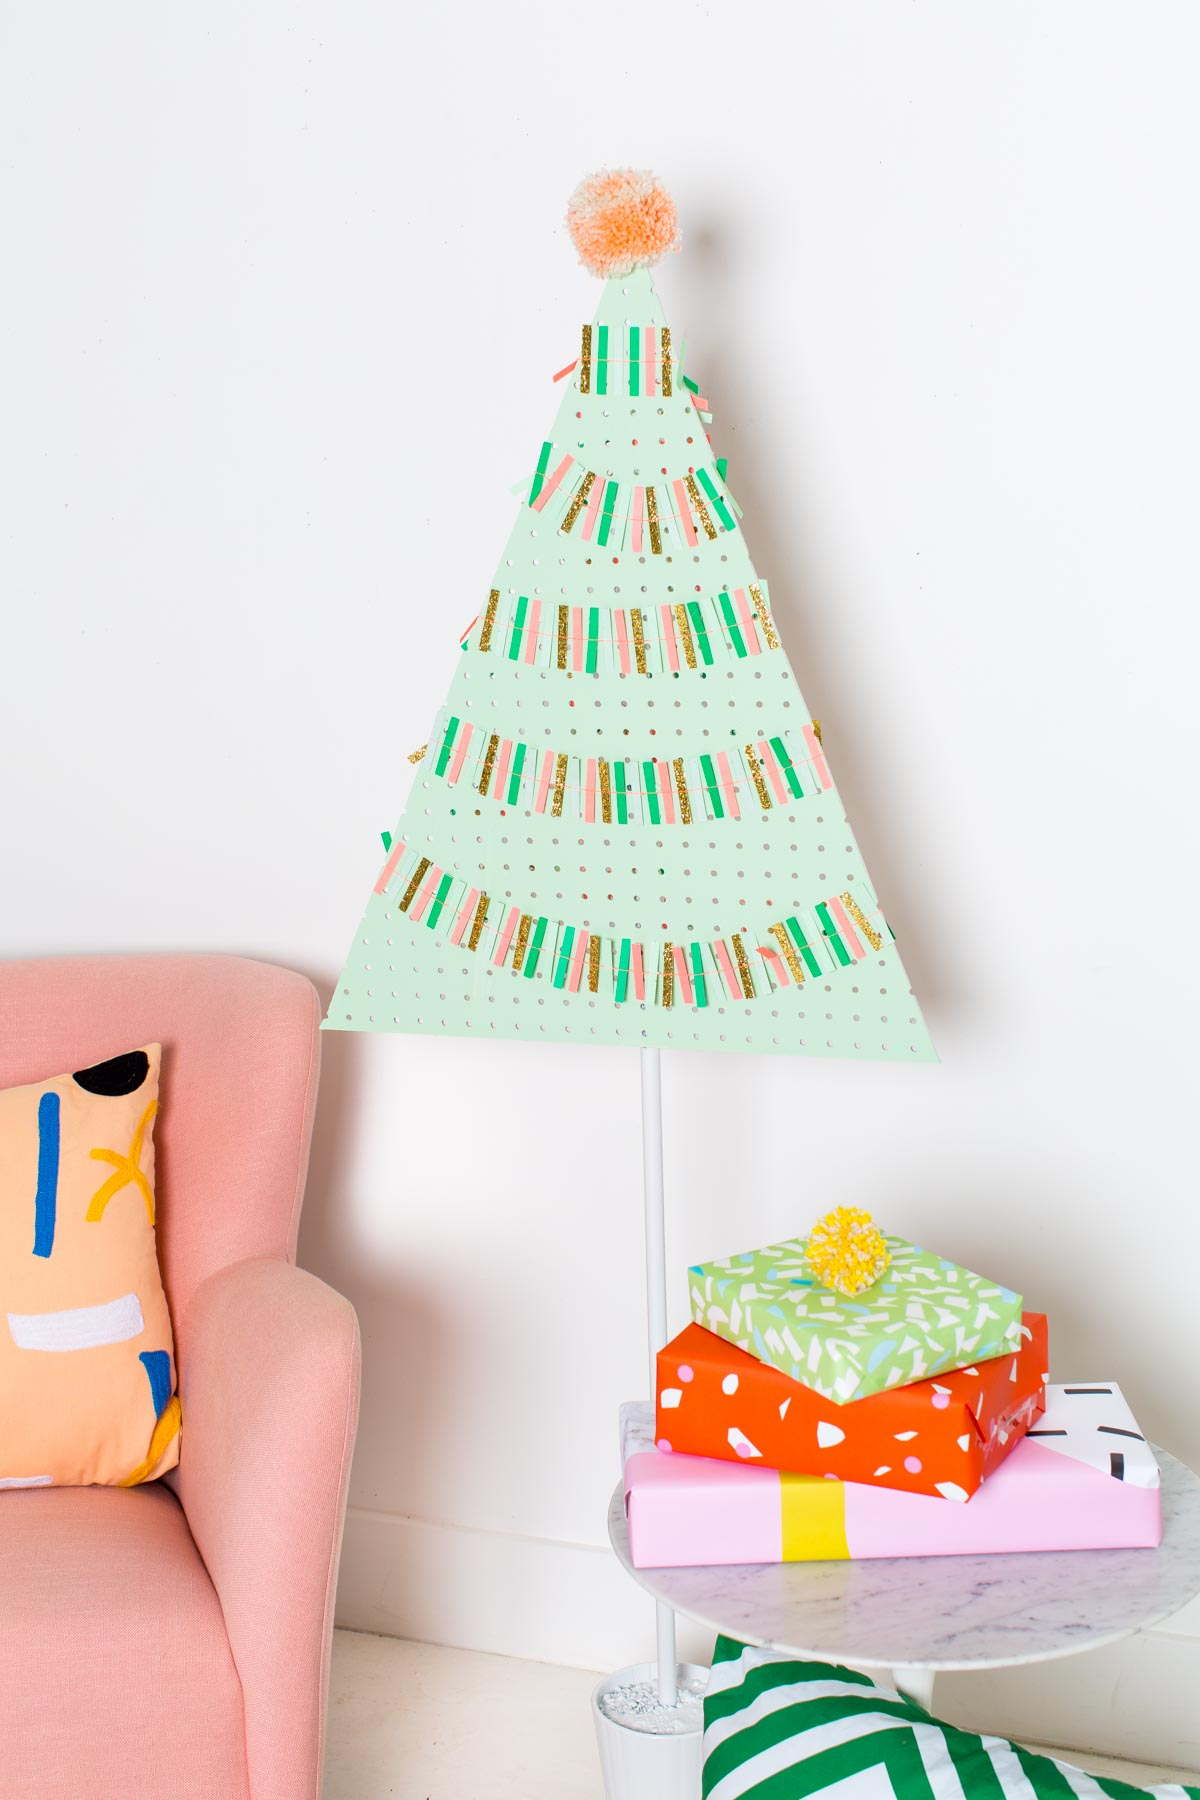 A DIY Pegboard Christmas Tree by DIY Blogger Ashley Rose of Sugar & Cloth